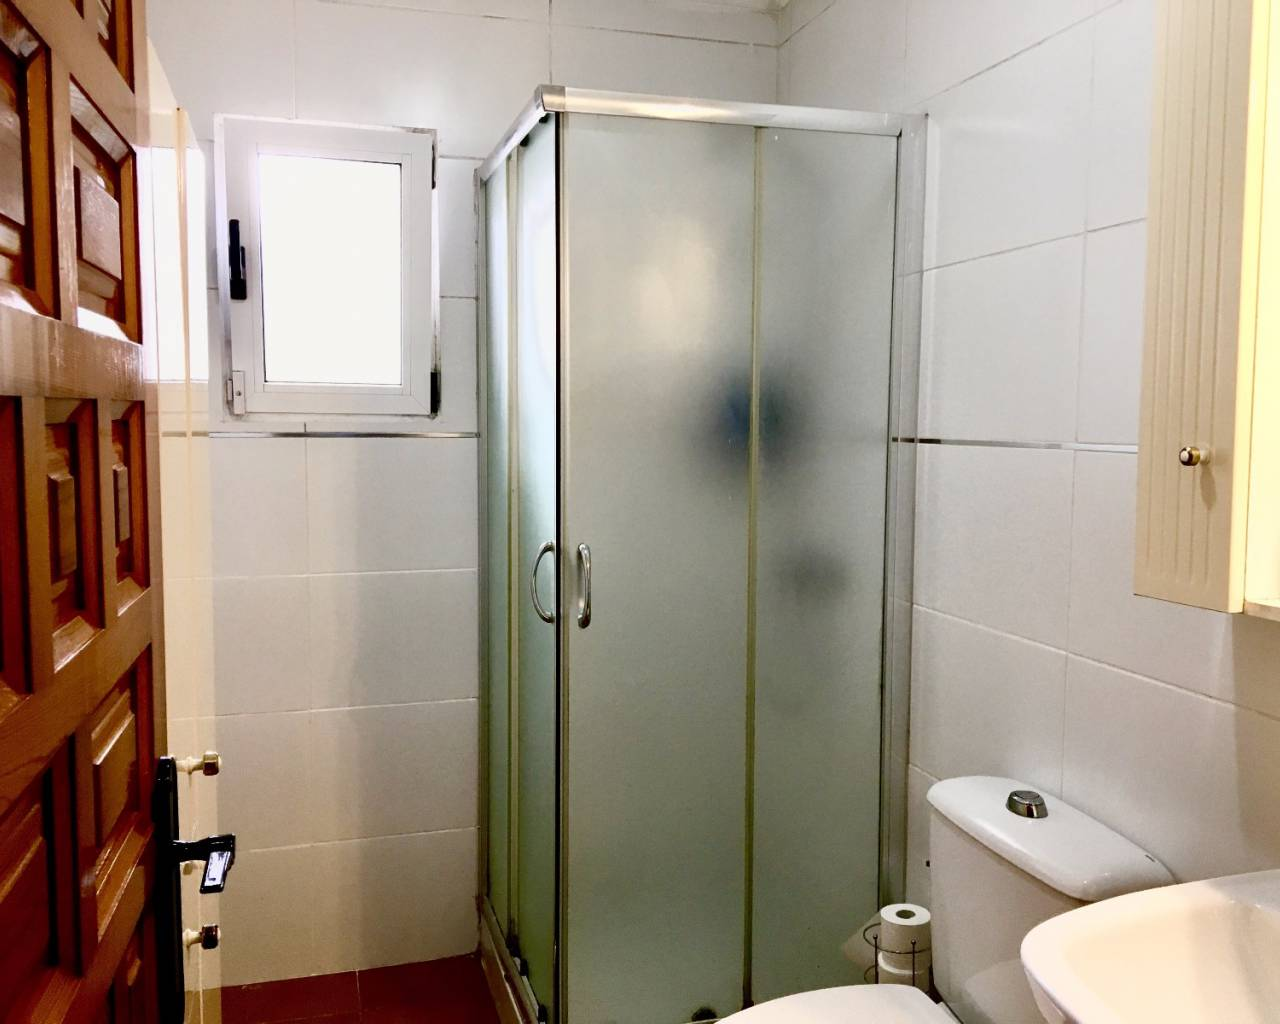 Resale - Detached Villa - Los Alcazares - Los Narejos